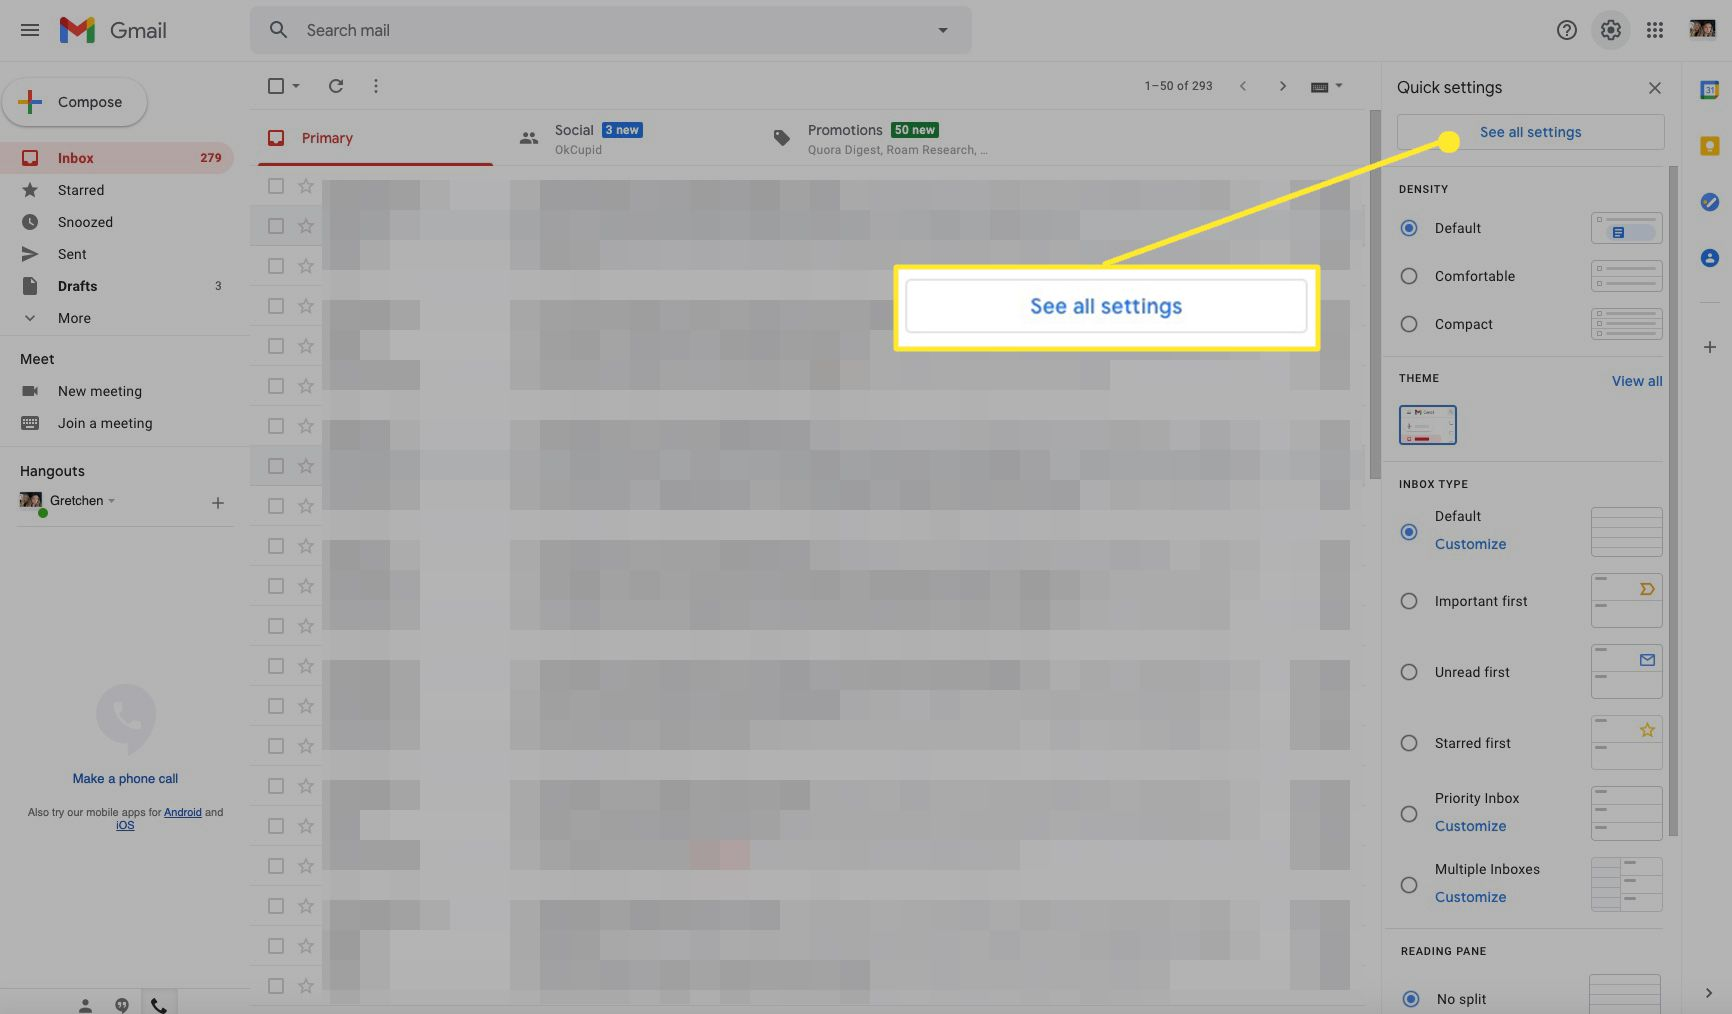 Gmail inbox screen with See all settings highlighted